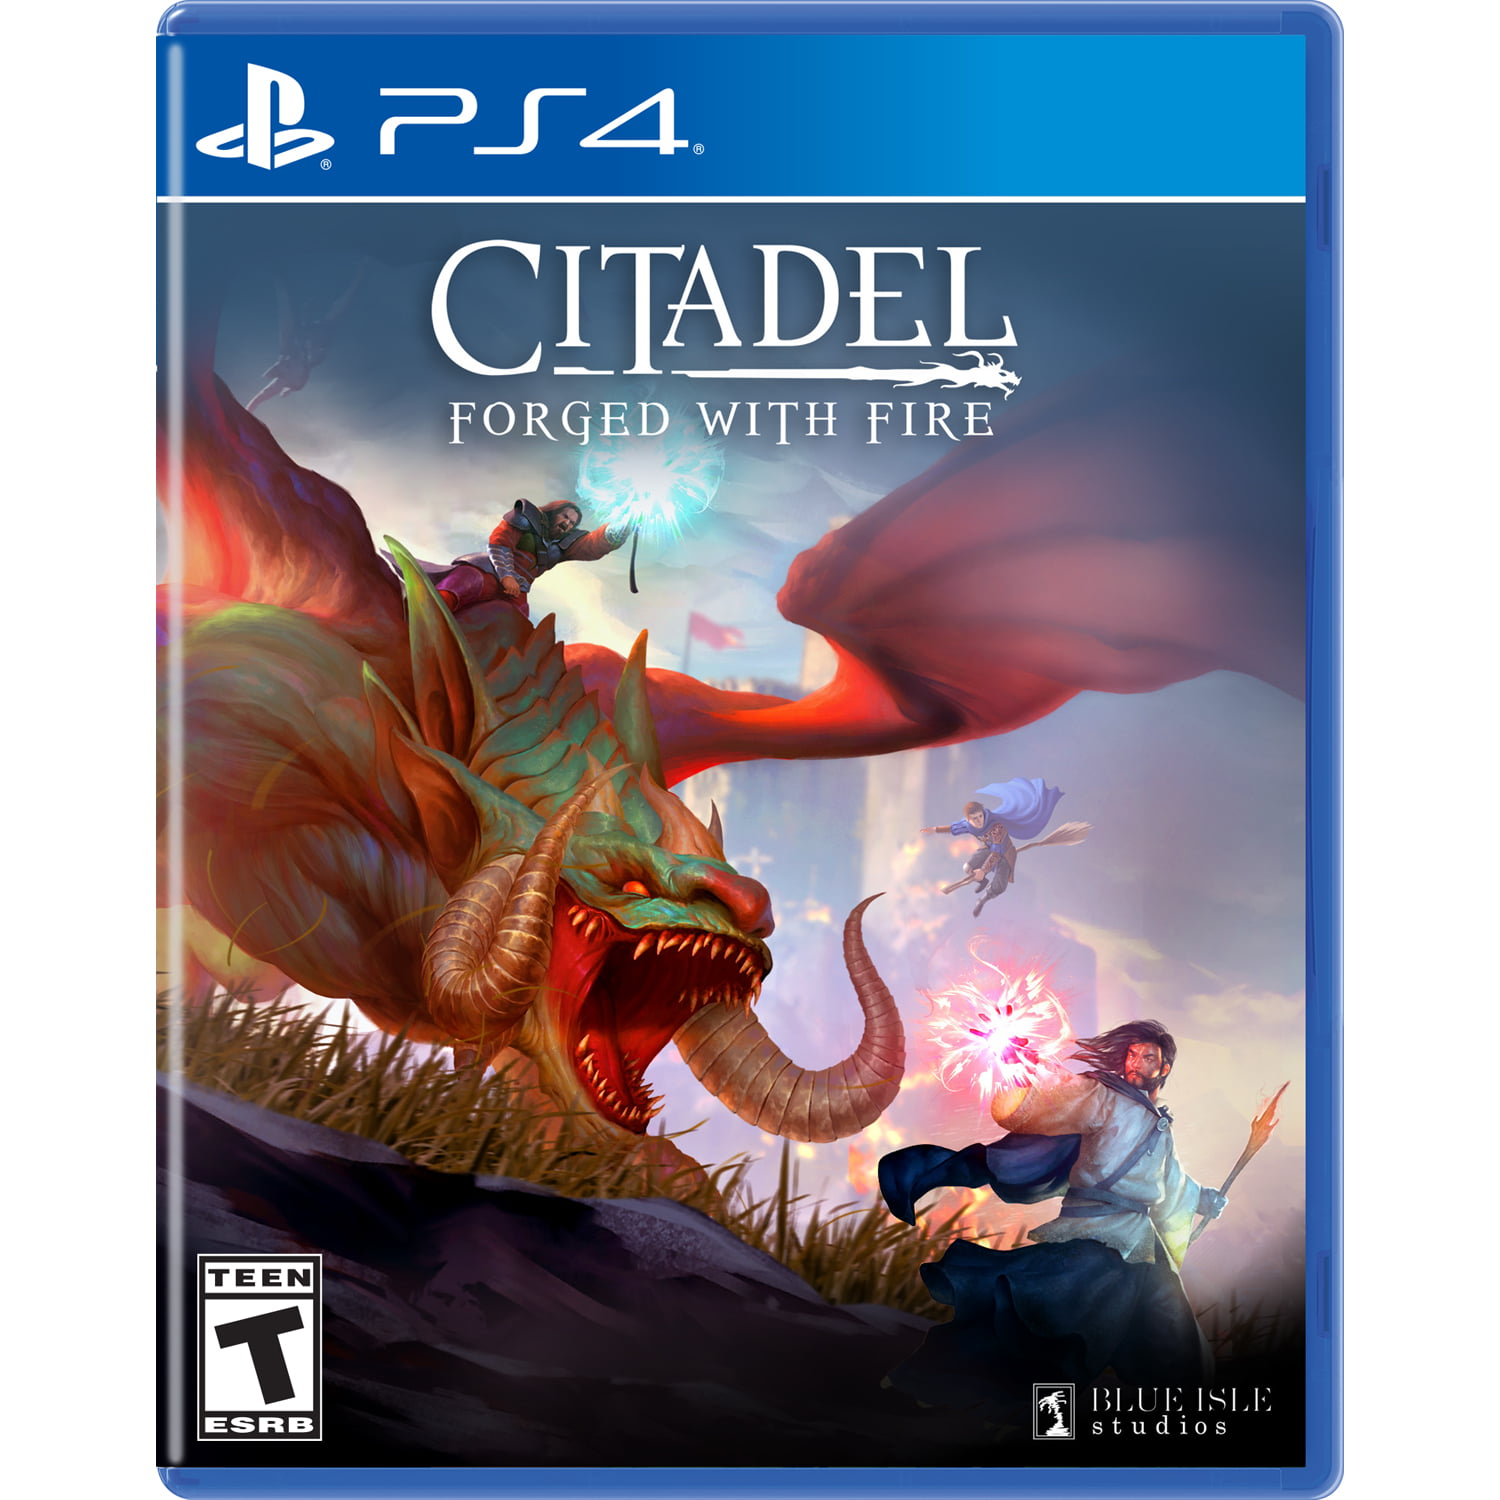 Citadel: Forged With Fire, Blue Isle Studios, PlayStation 4, 884095196028